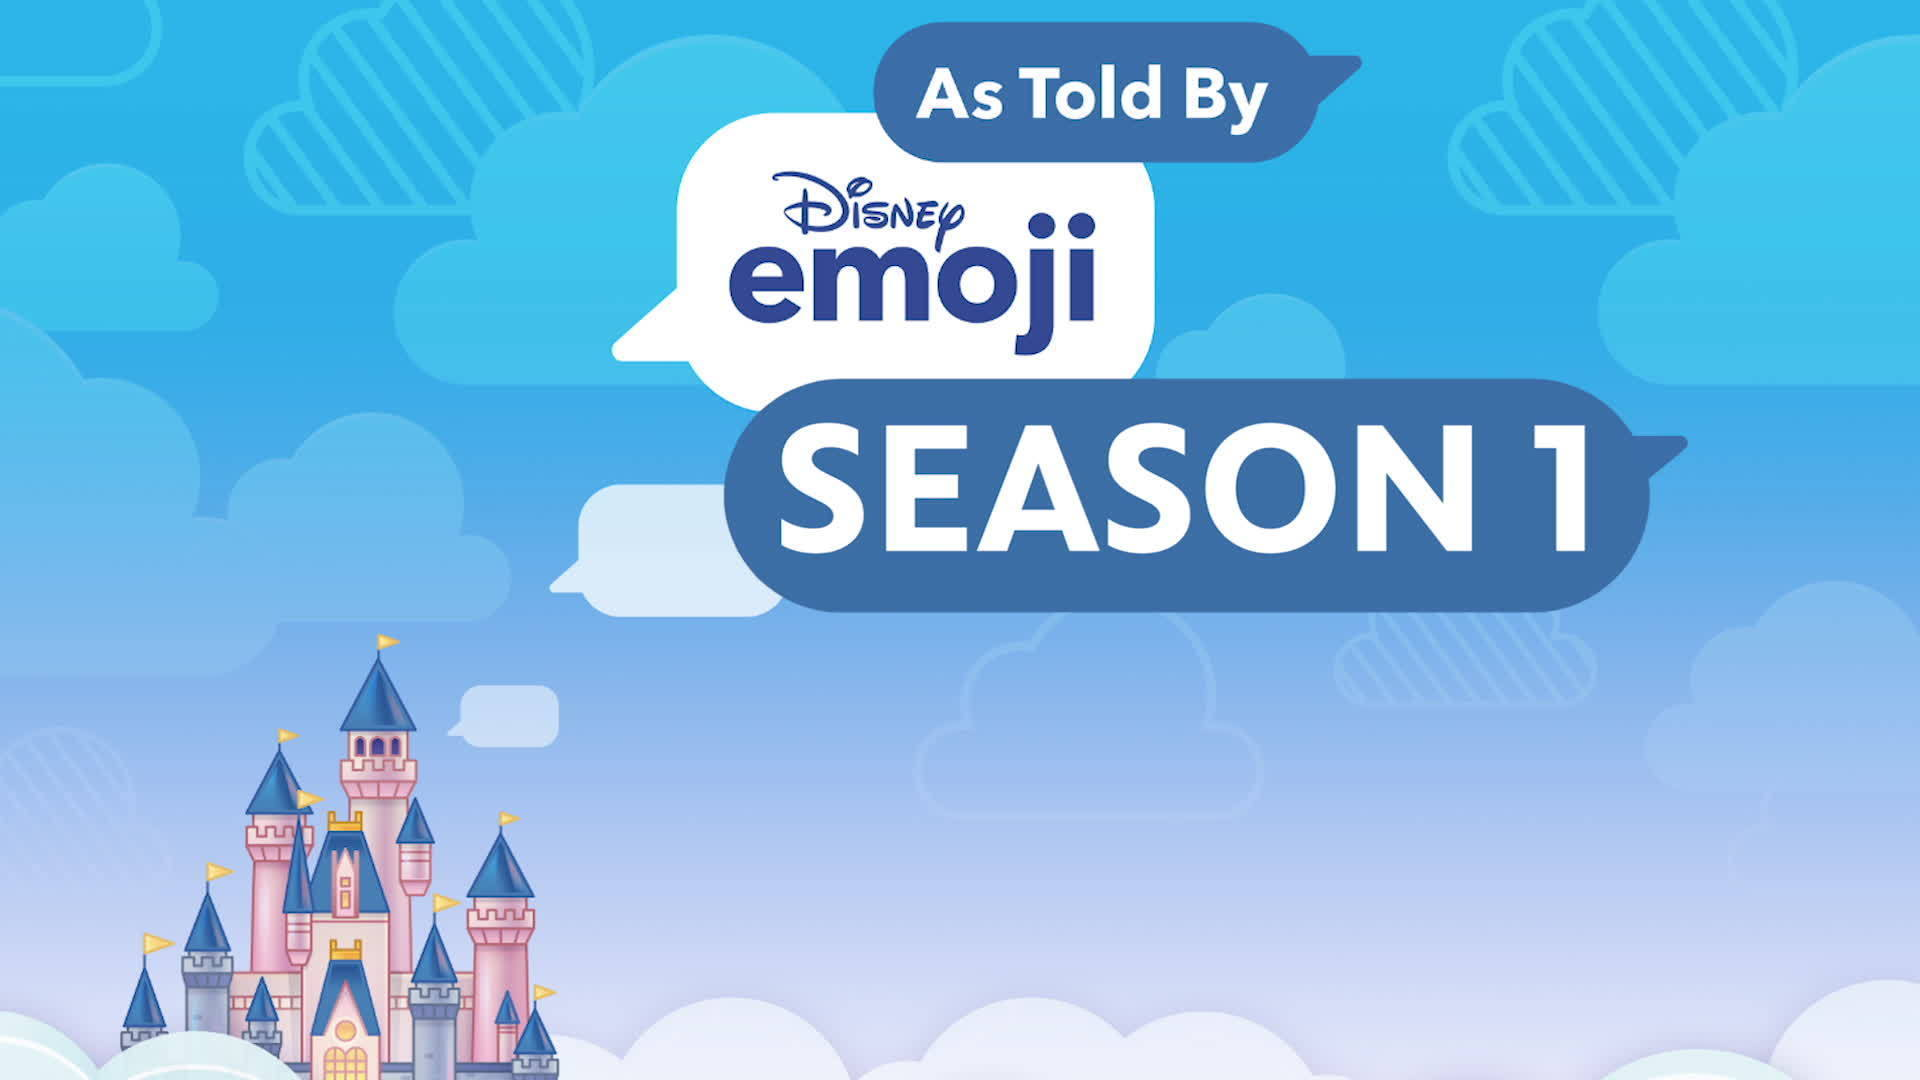 Disney As Told by Emoji Season 1 Compilation